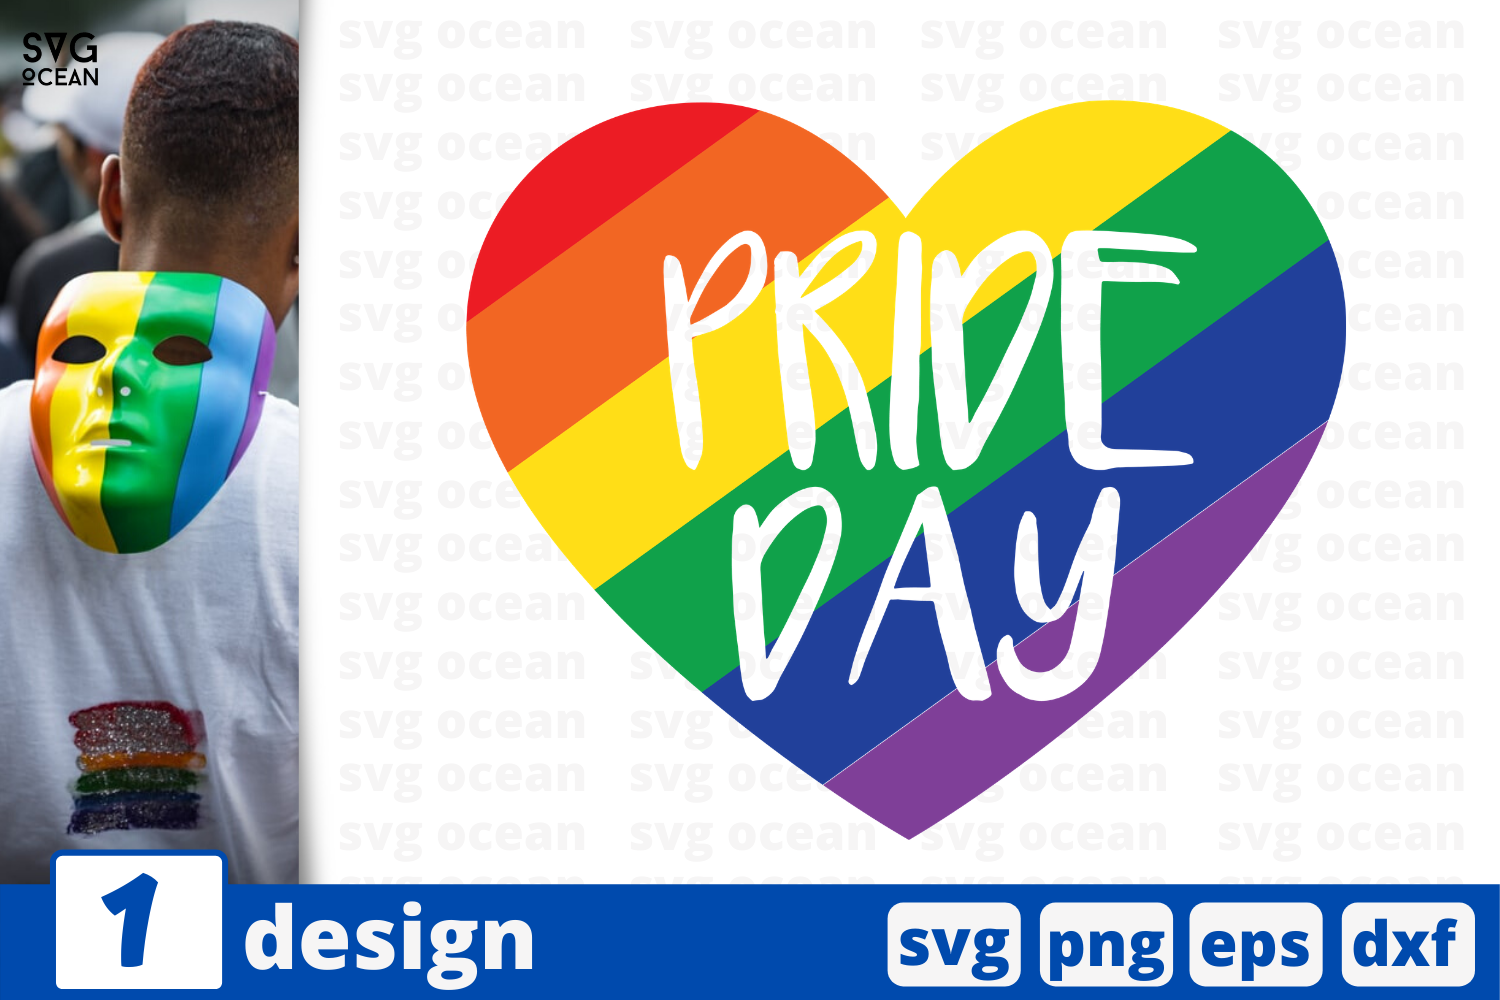 Download Free Pride Day Lgbt Quotes Graphic By Svgocean Creative Fabrica for Cricut Explore, Silhouette and other cutting machines.